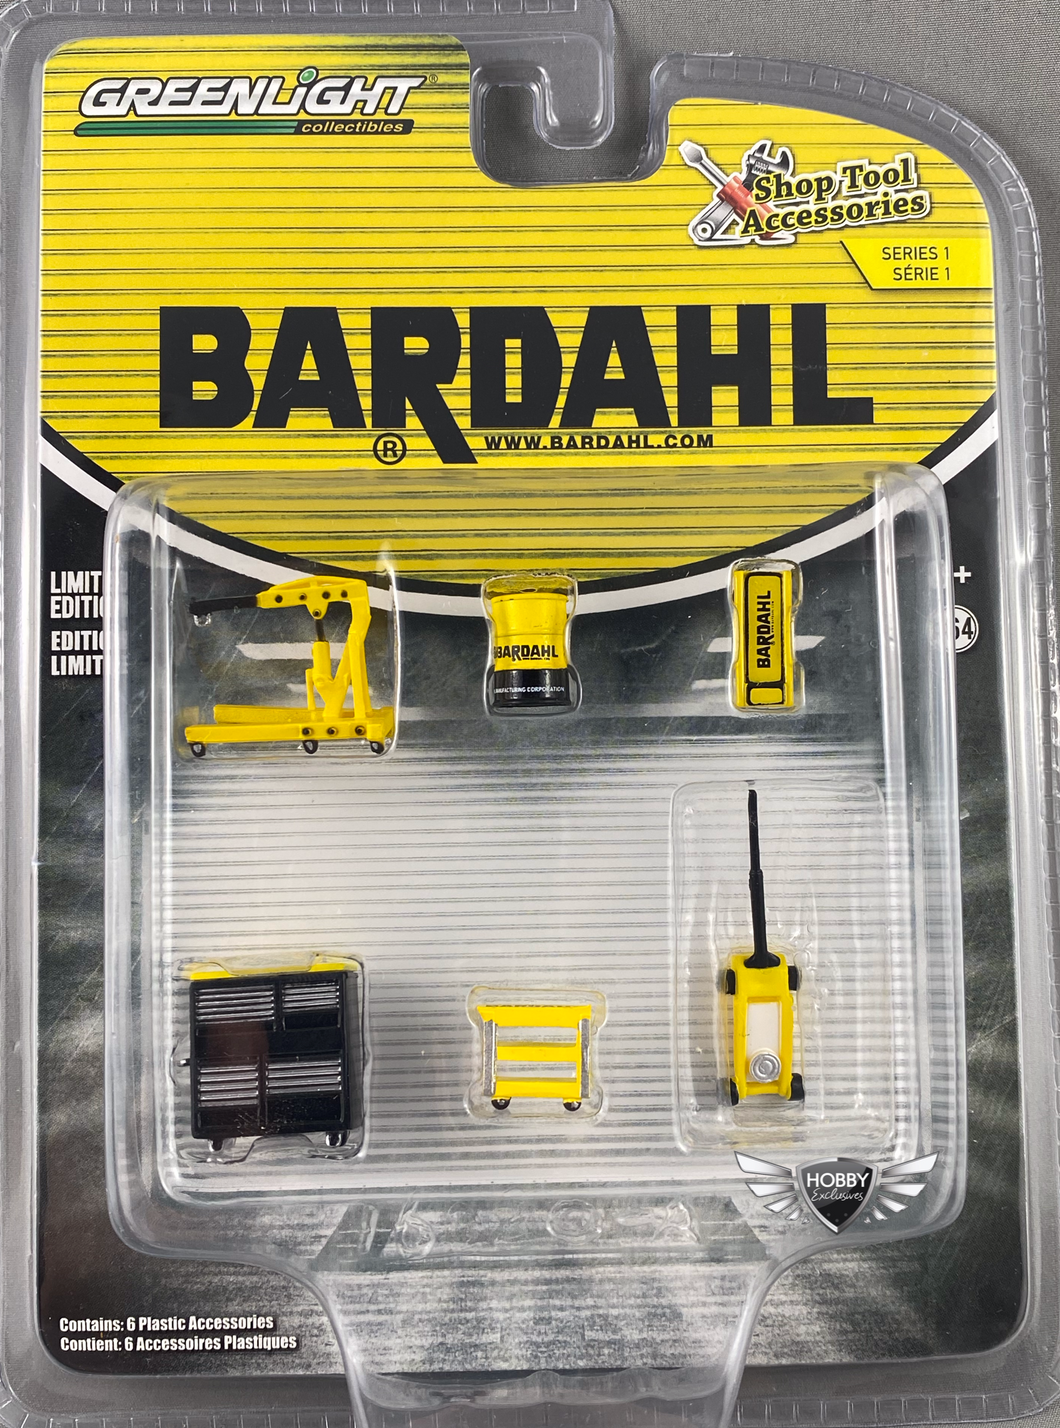 Shop Tool Accessories BARDAHL Greenlight